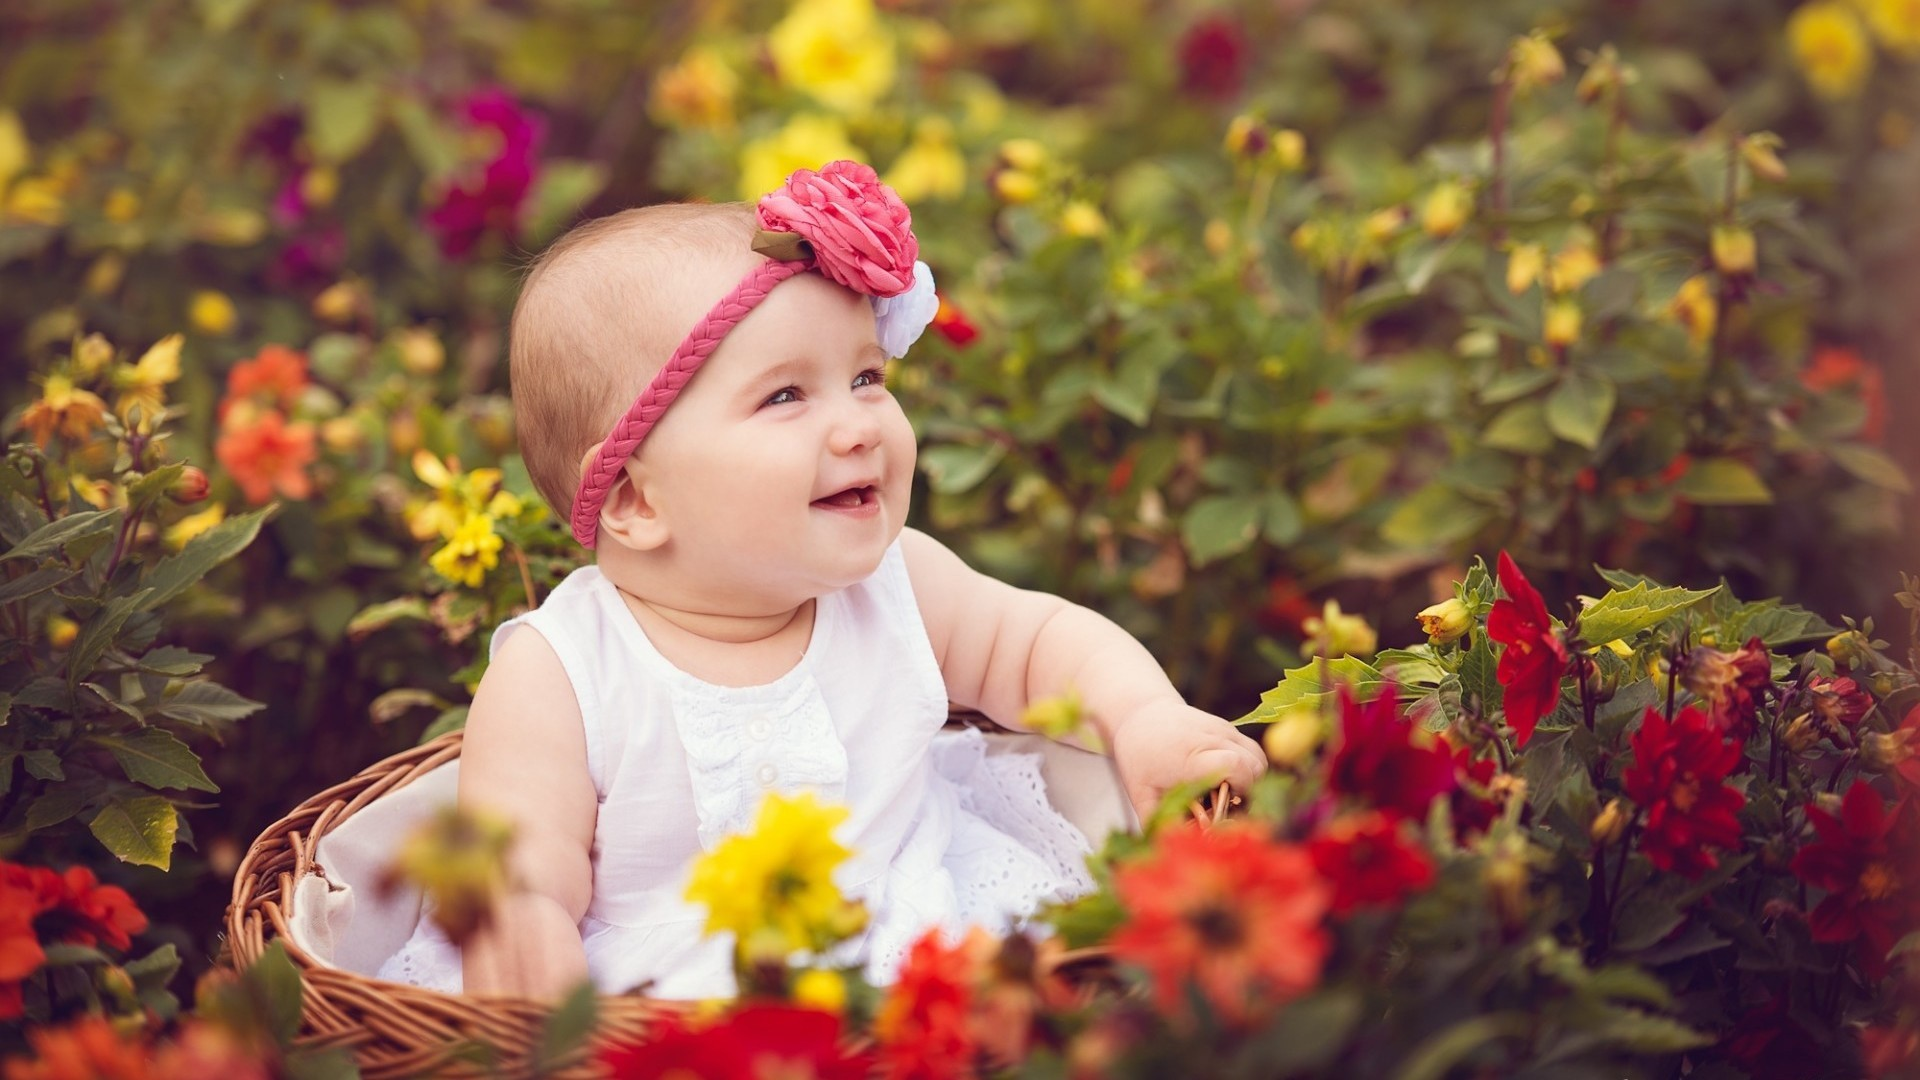 Beautiful Babies Wallpapers 2015: 45 Small And Cute Baby Wallpaper Download For Free